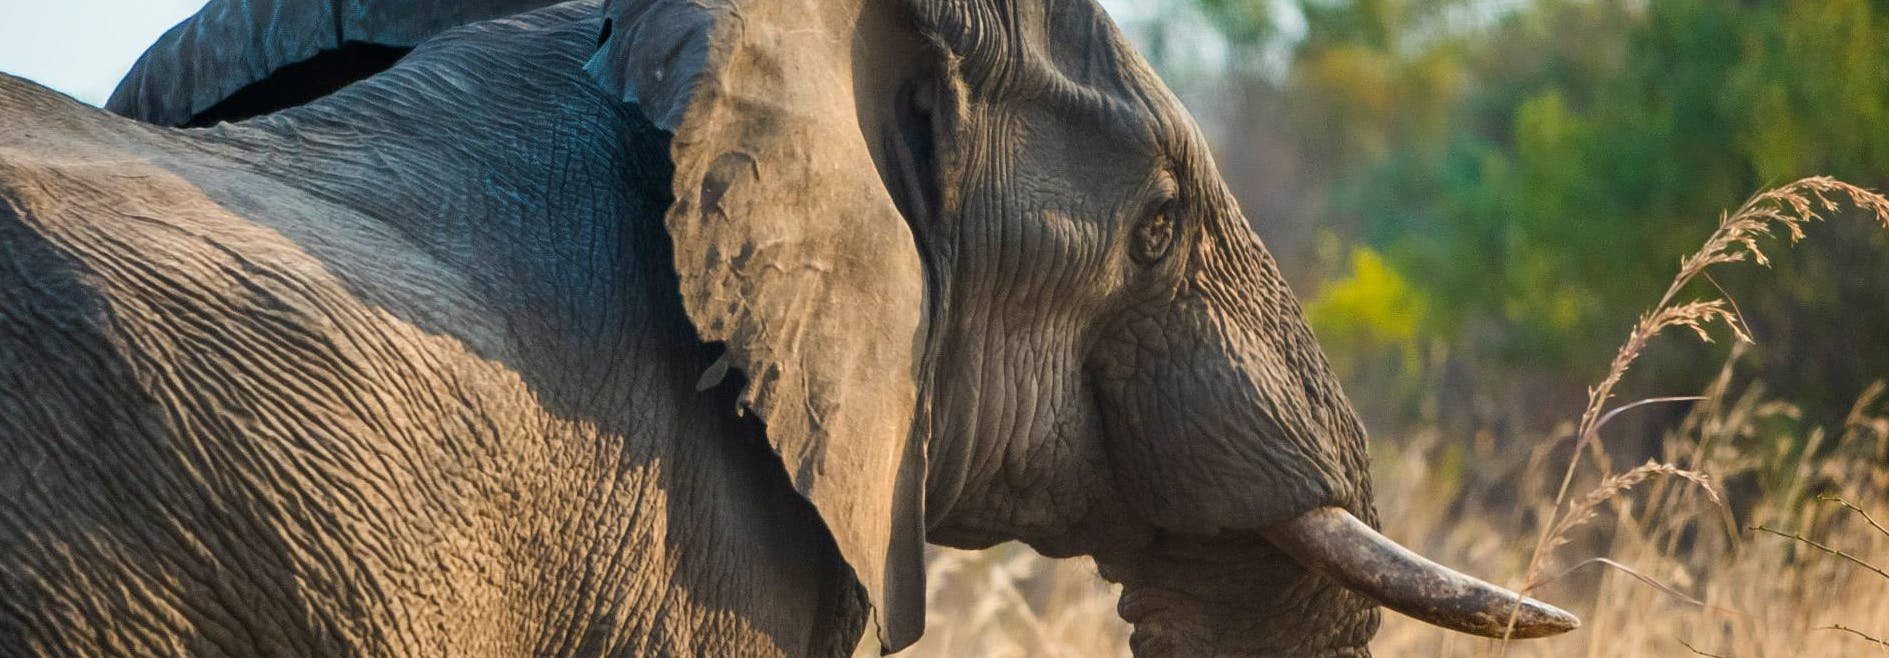 Image of: Animal Planet Affordable Wildlife Animal Volunteer Abroad Projects Wedding Photography Design Affordable Animal Volunteer Abroad Wildlife Conservation Projects